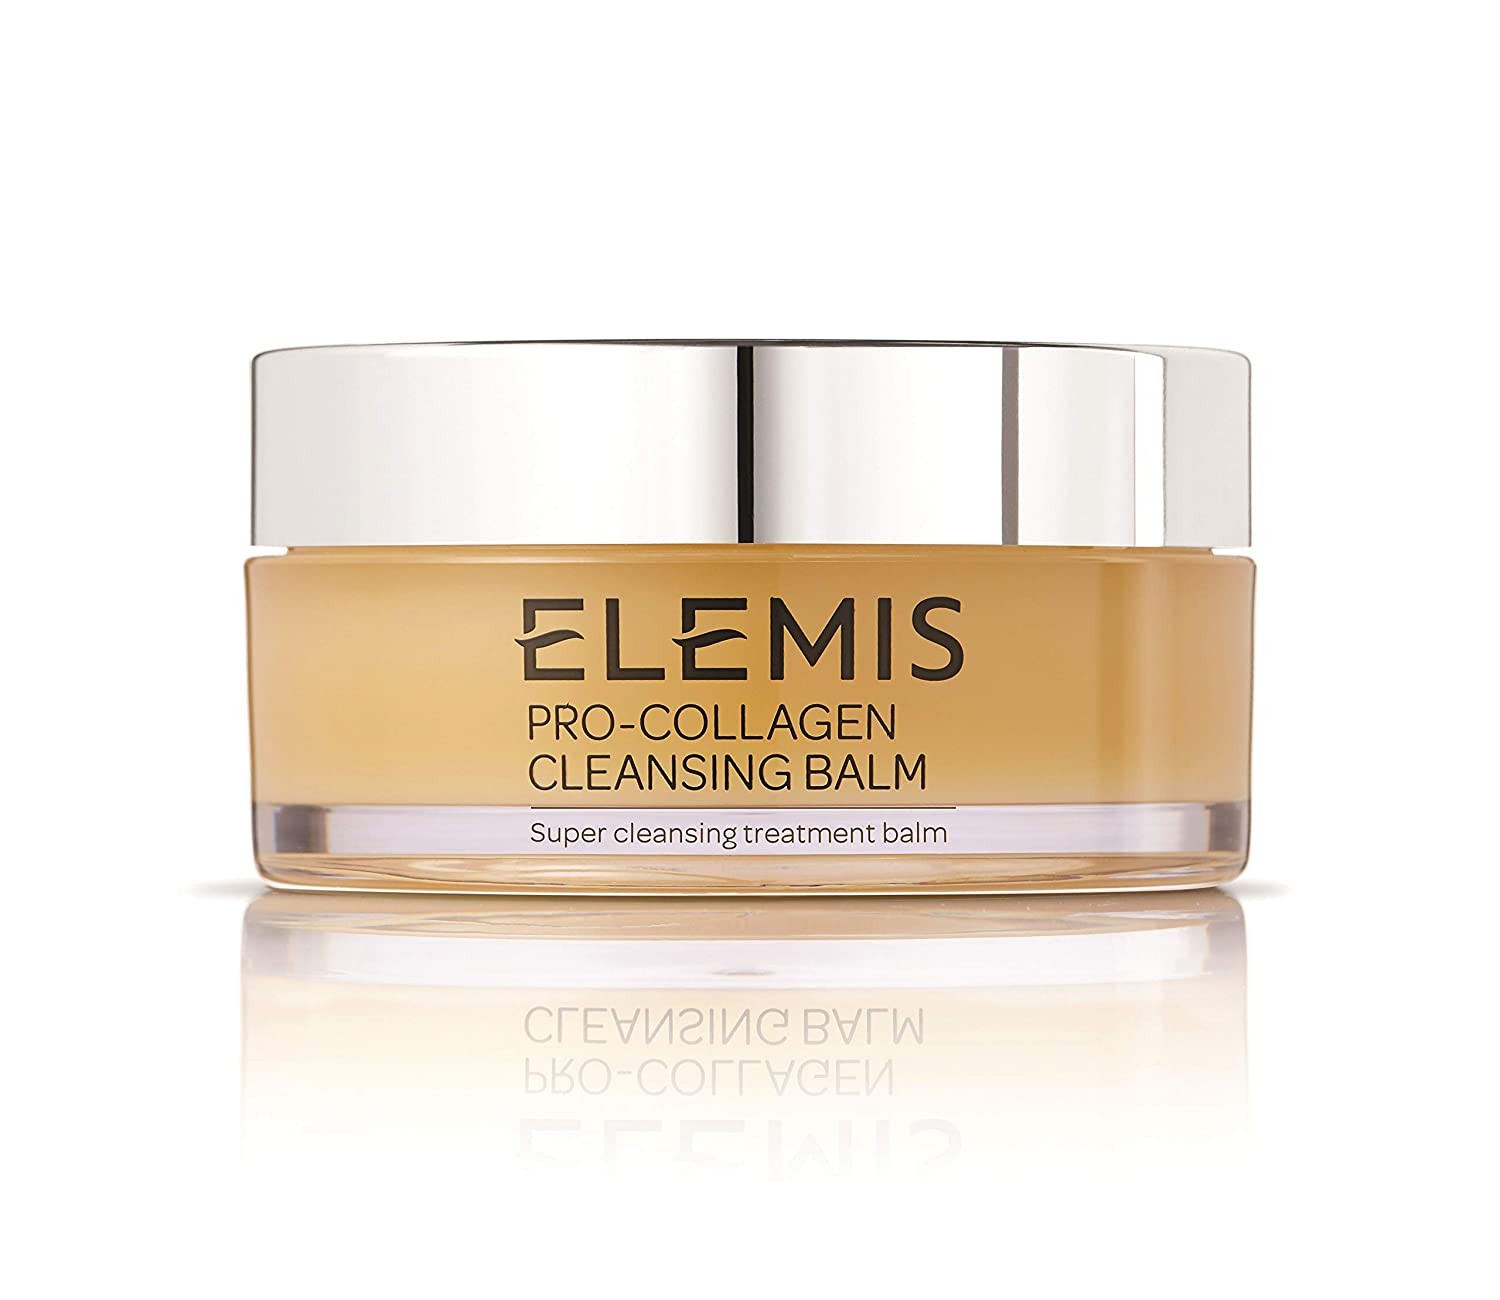 ELEMIS Pro-Collagen Cleansing Balm, Super Cleansing Treatment Balm, Original